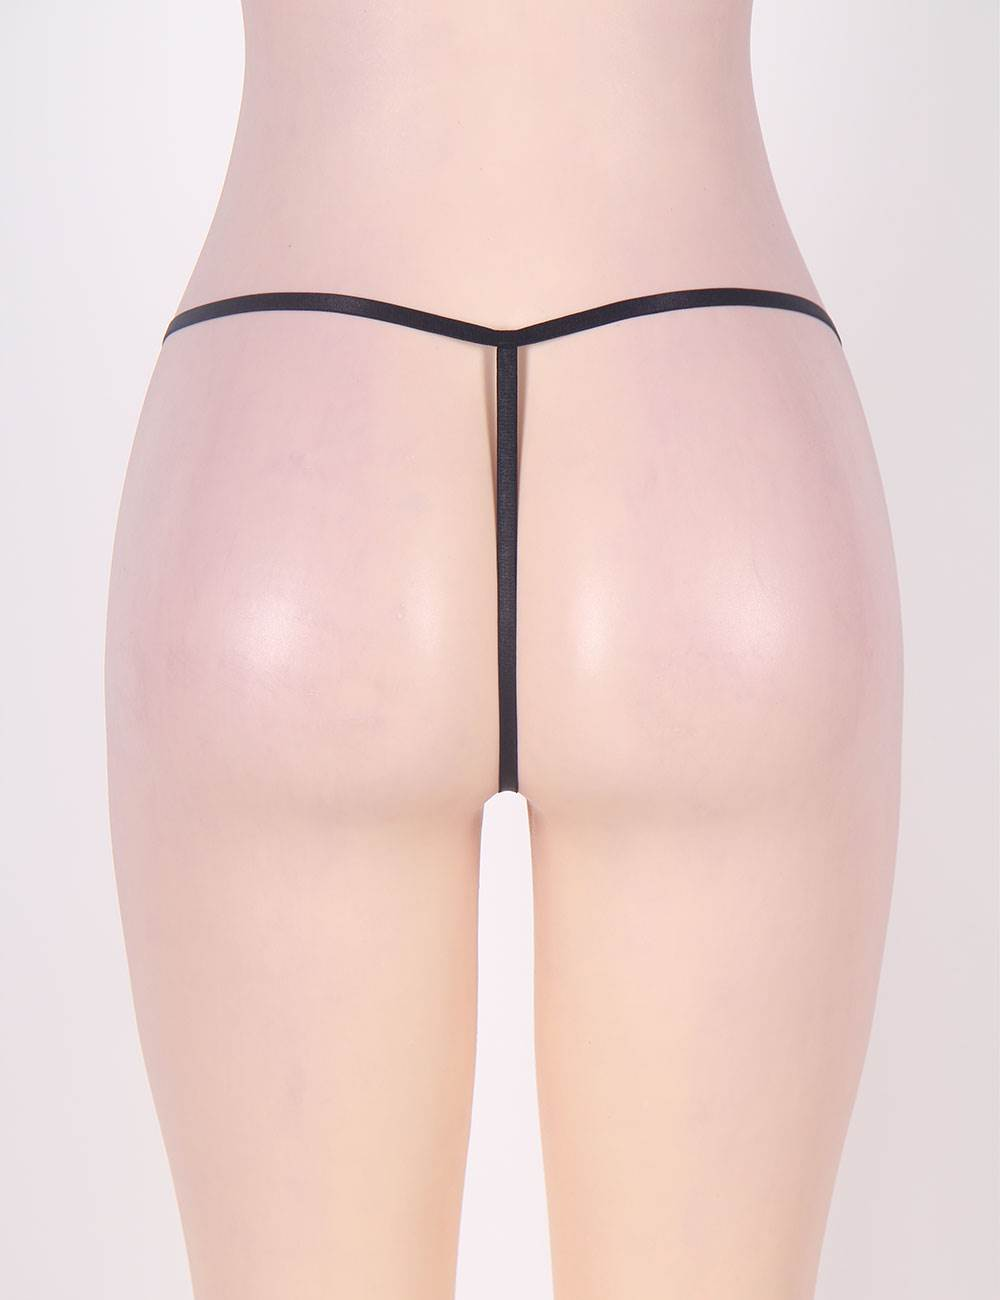 Plus size women's thong with good quality